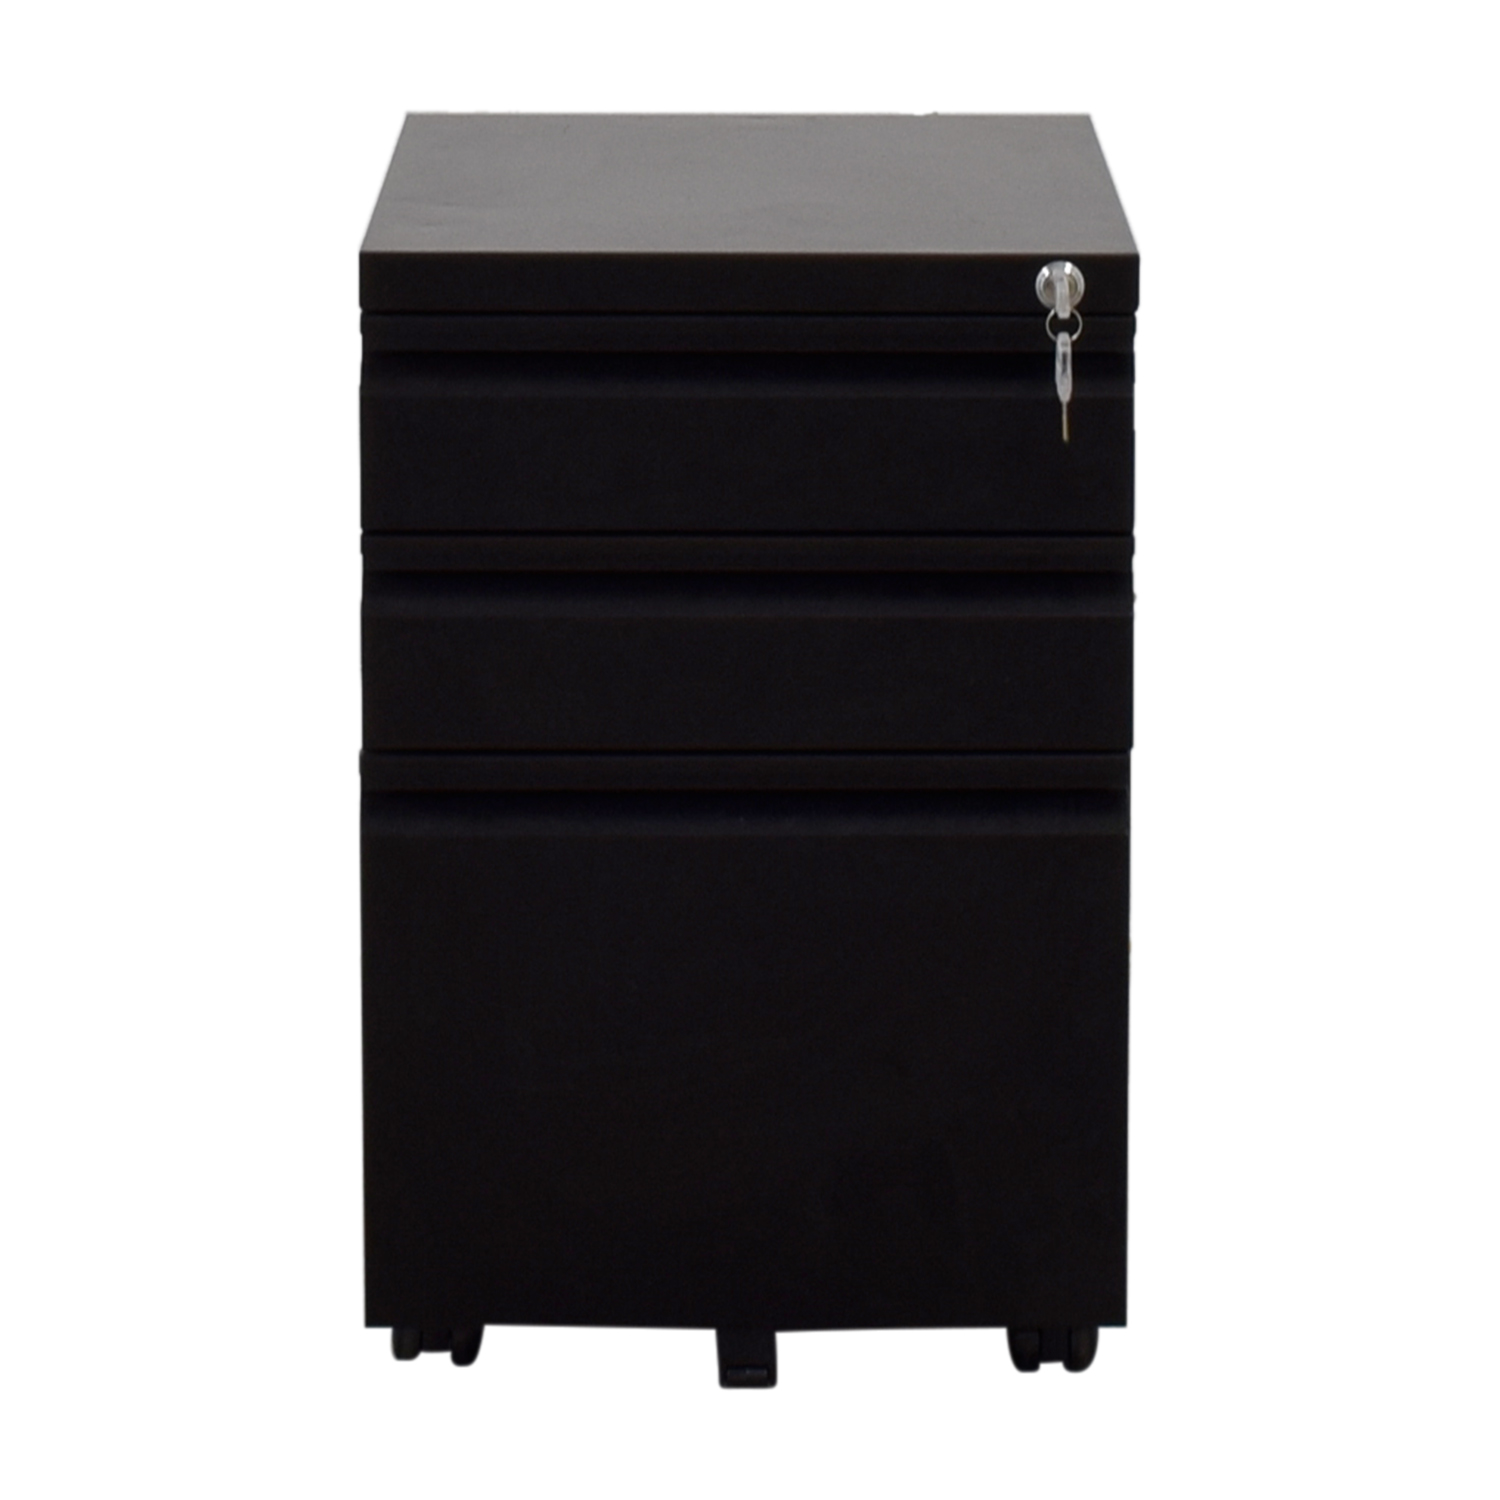 DEVAISE Three-Drawer Black Metal File Cabinet with Lock DEVAISE